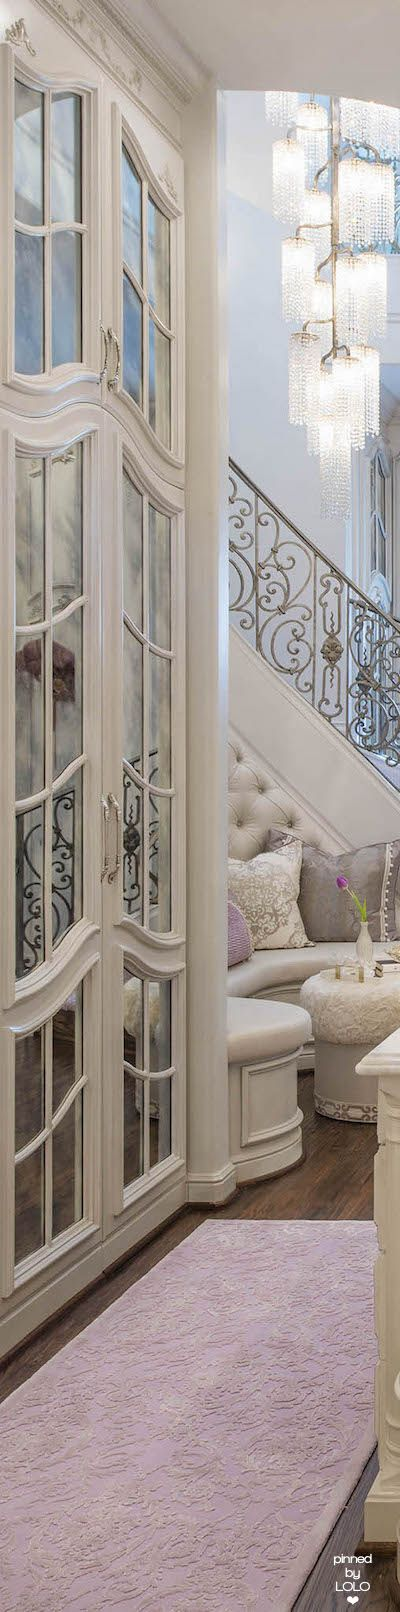 Mediterranean luxury home in light colors. on-trend cool neutral decorating with transitional lighting